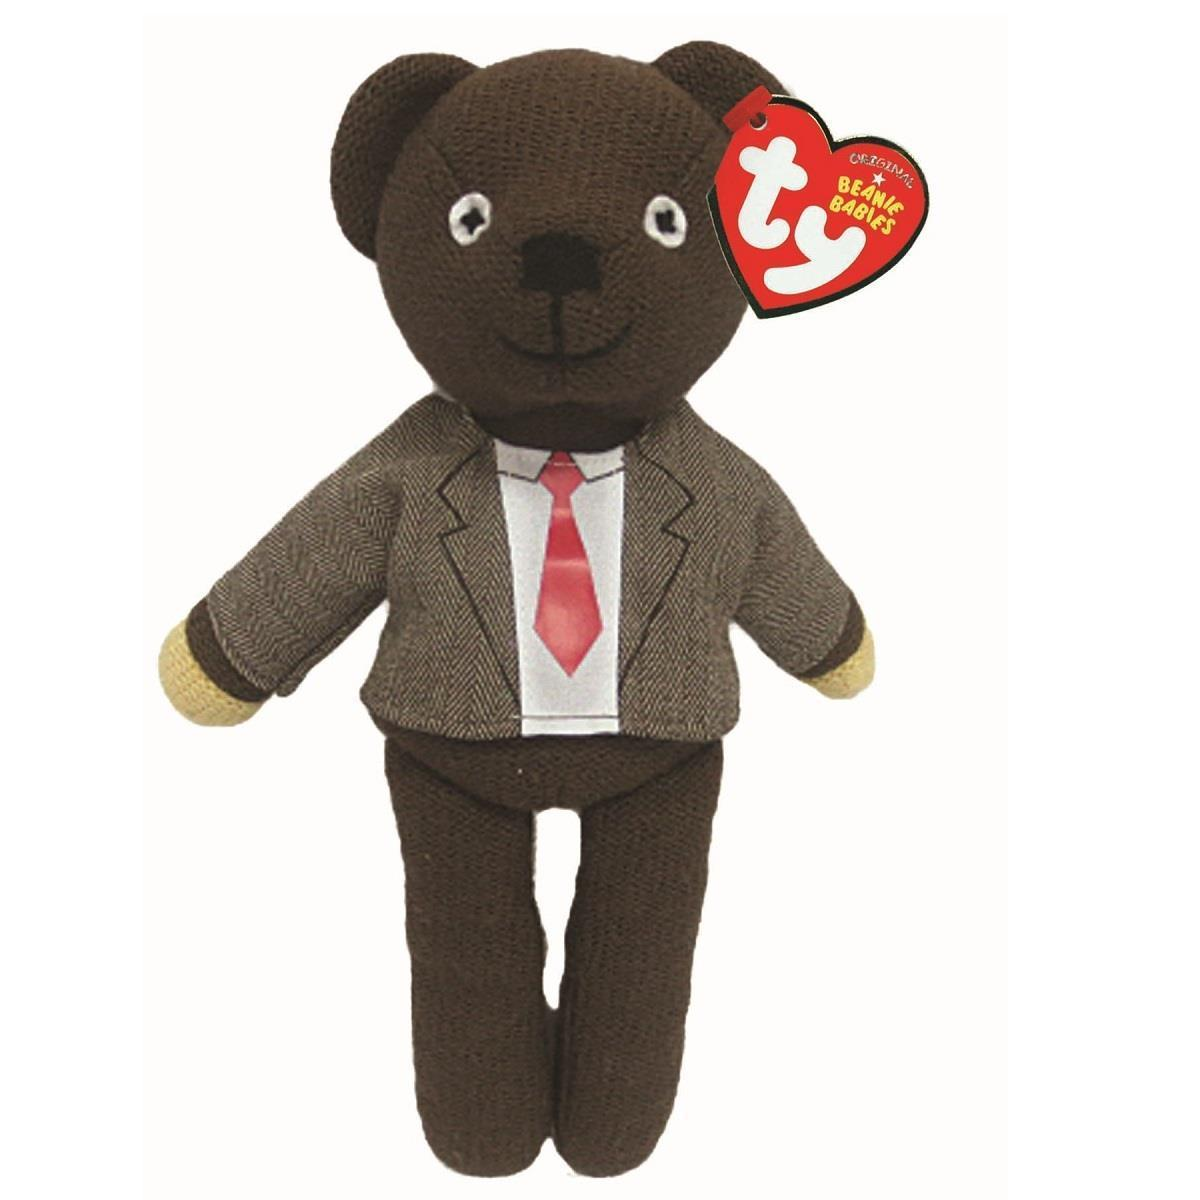 Mr Bean Teddy with Jacket and Tie